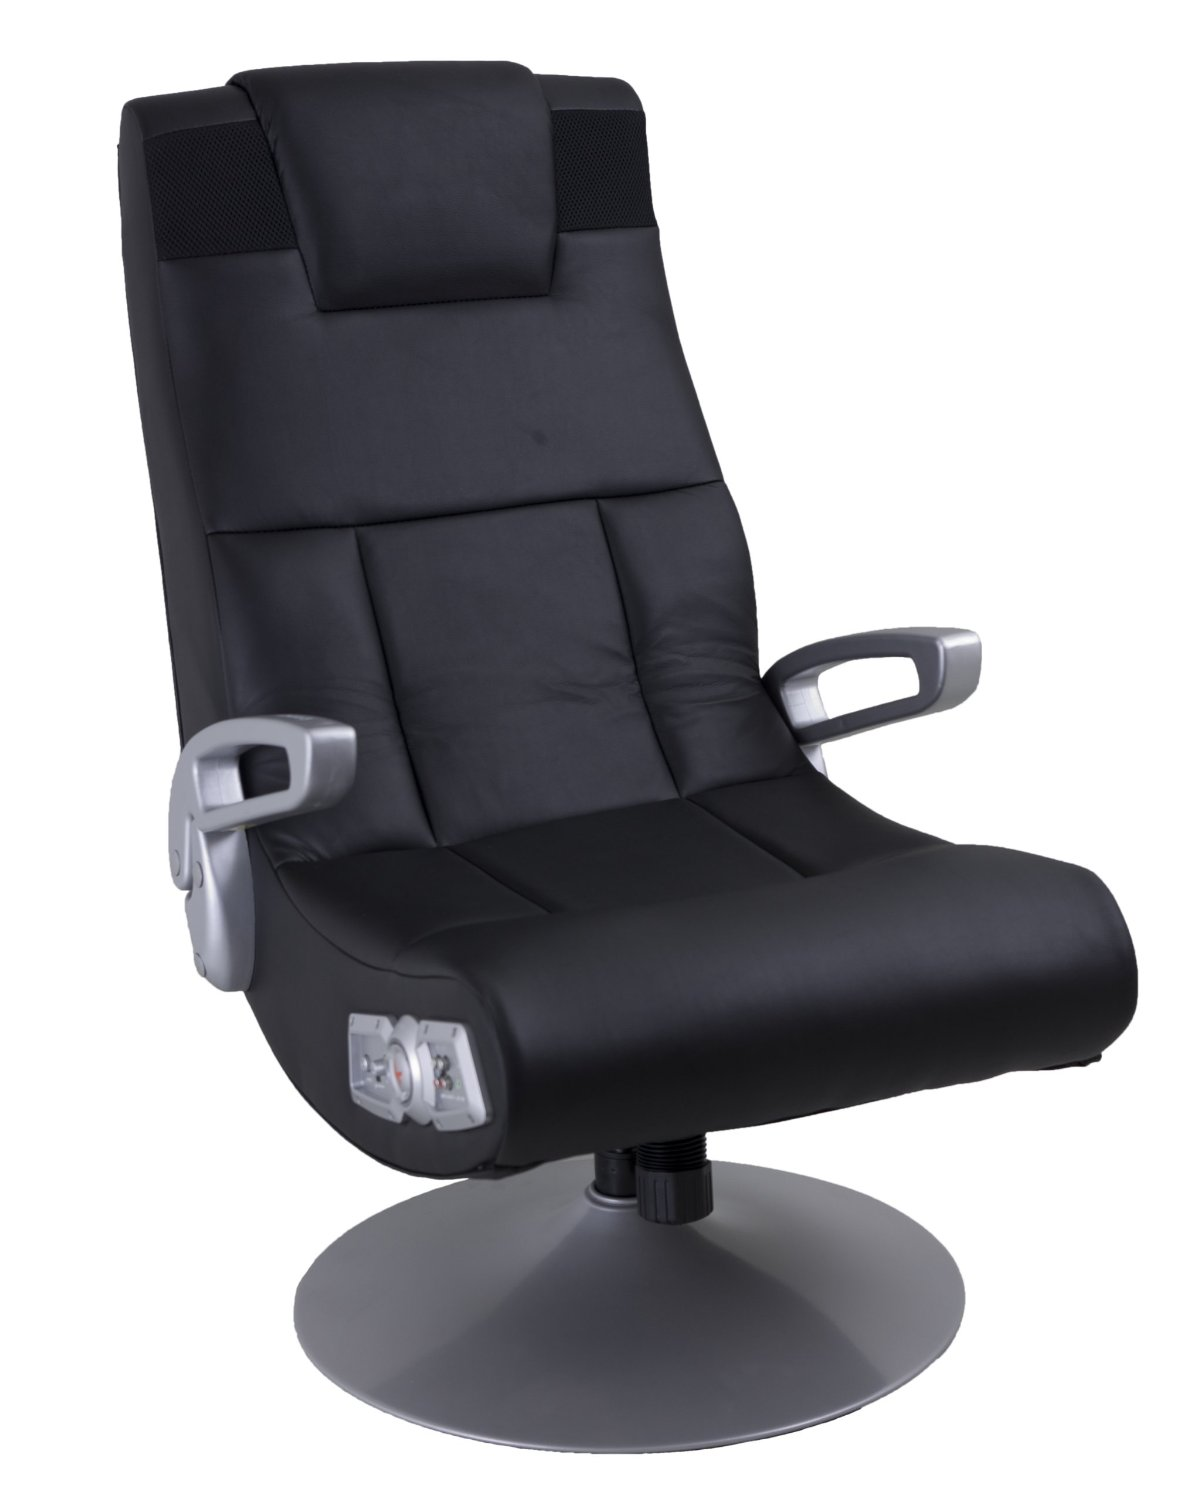 Gaiming Chair 5 Video Gaming Chairs For Racing Accessories Lists